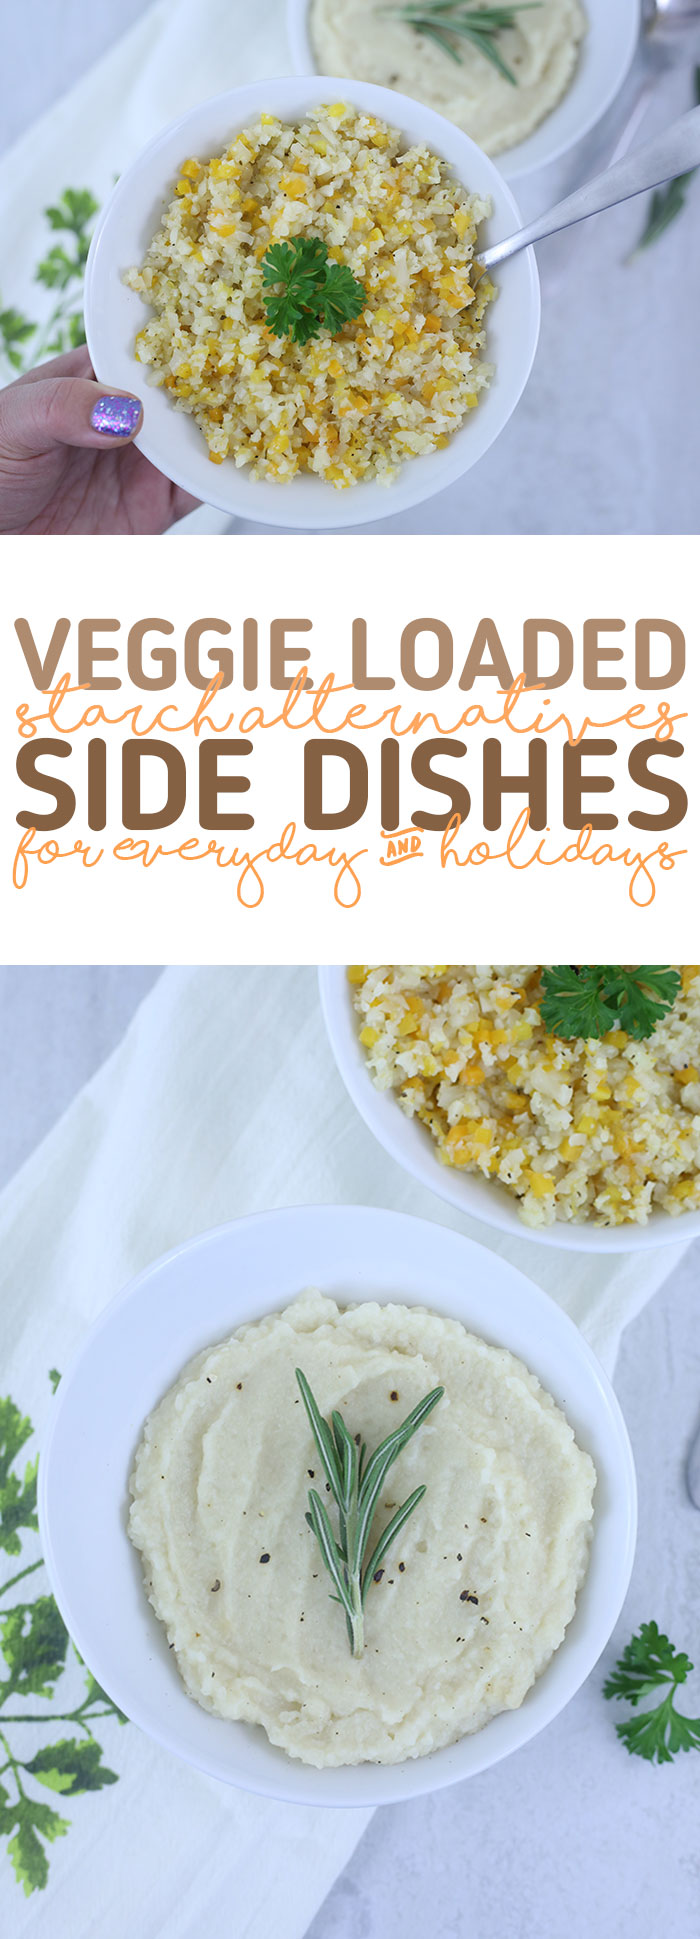 Veggie loaded side dishes that make great starch alternatives. Side dishes for every day and the holidays.